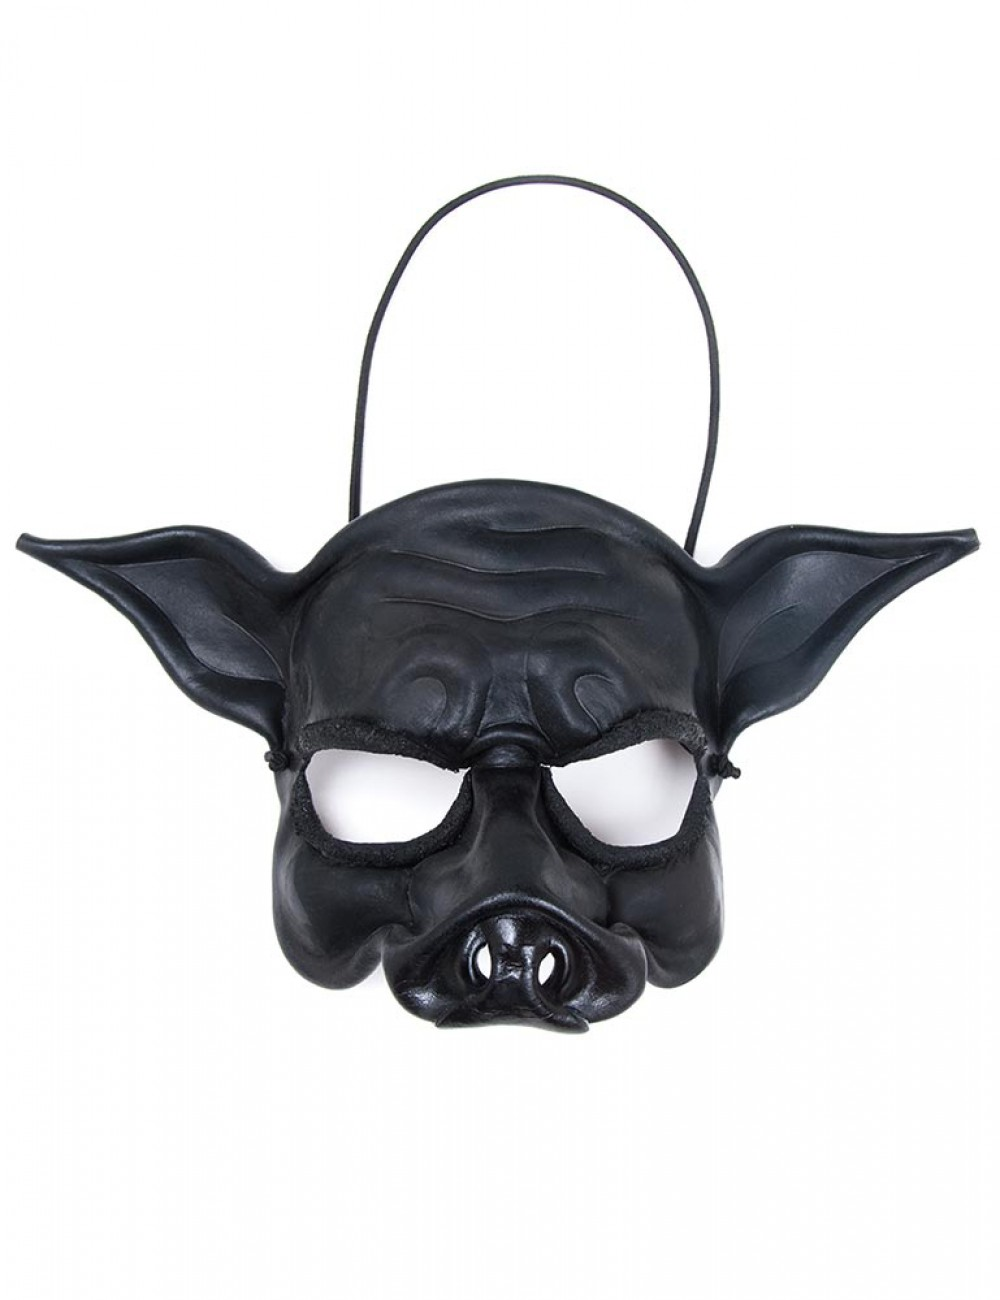 Black Pig Face Mask